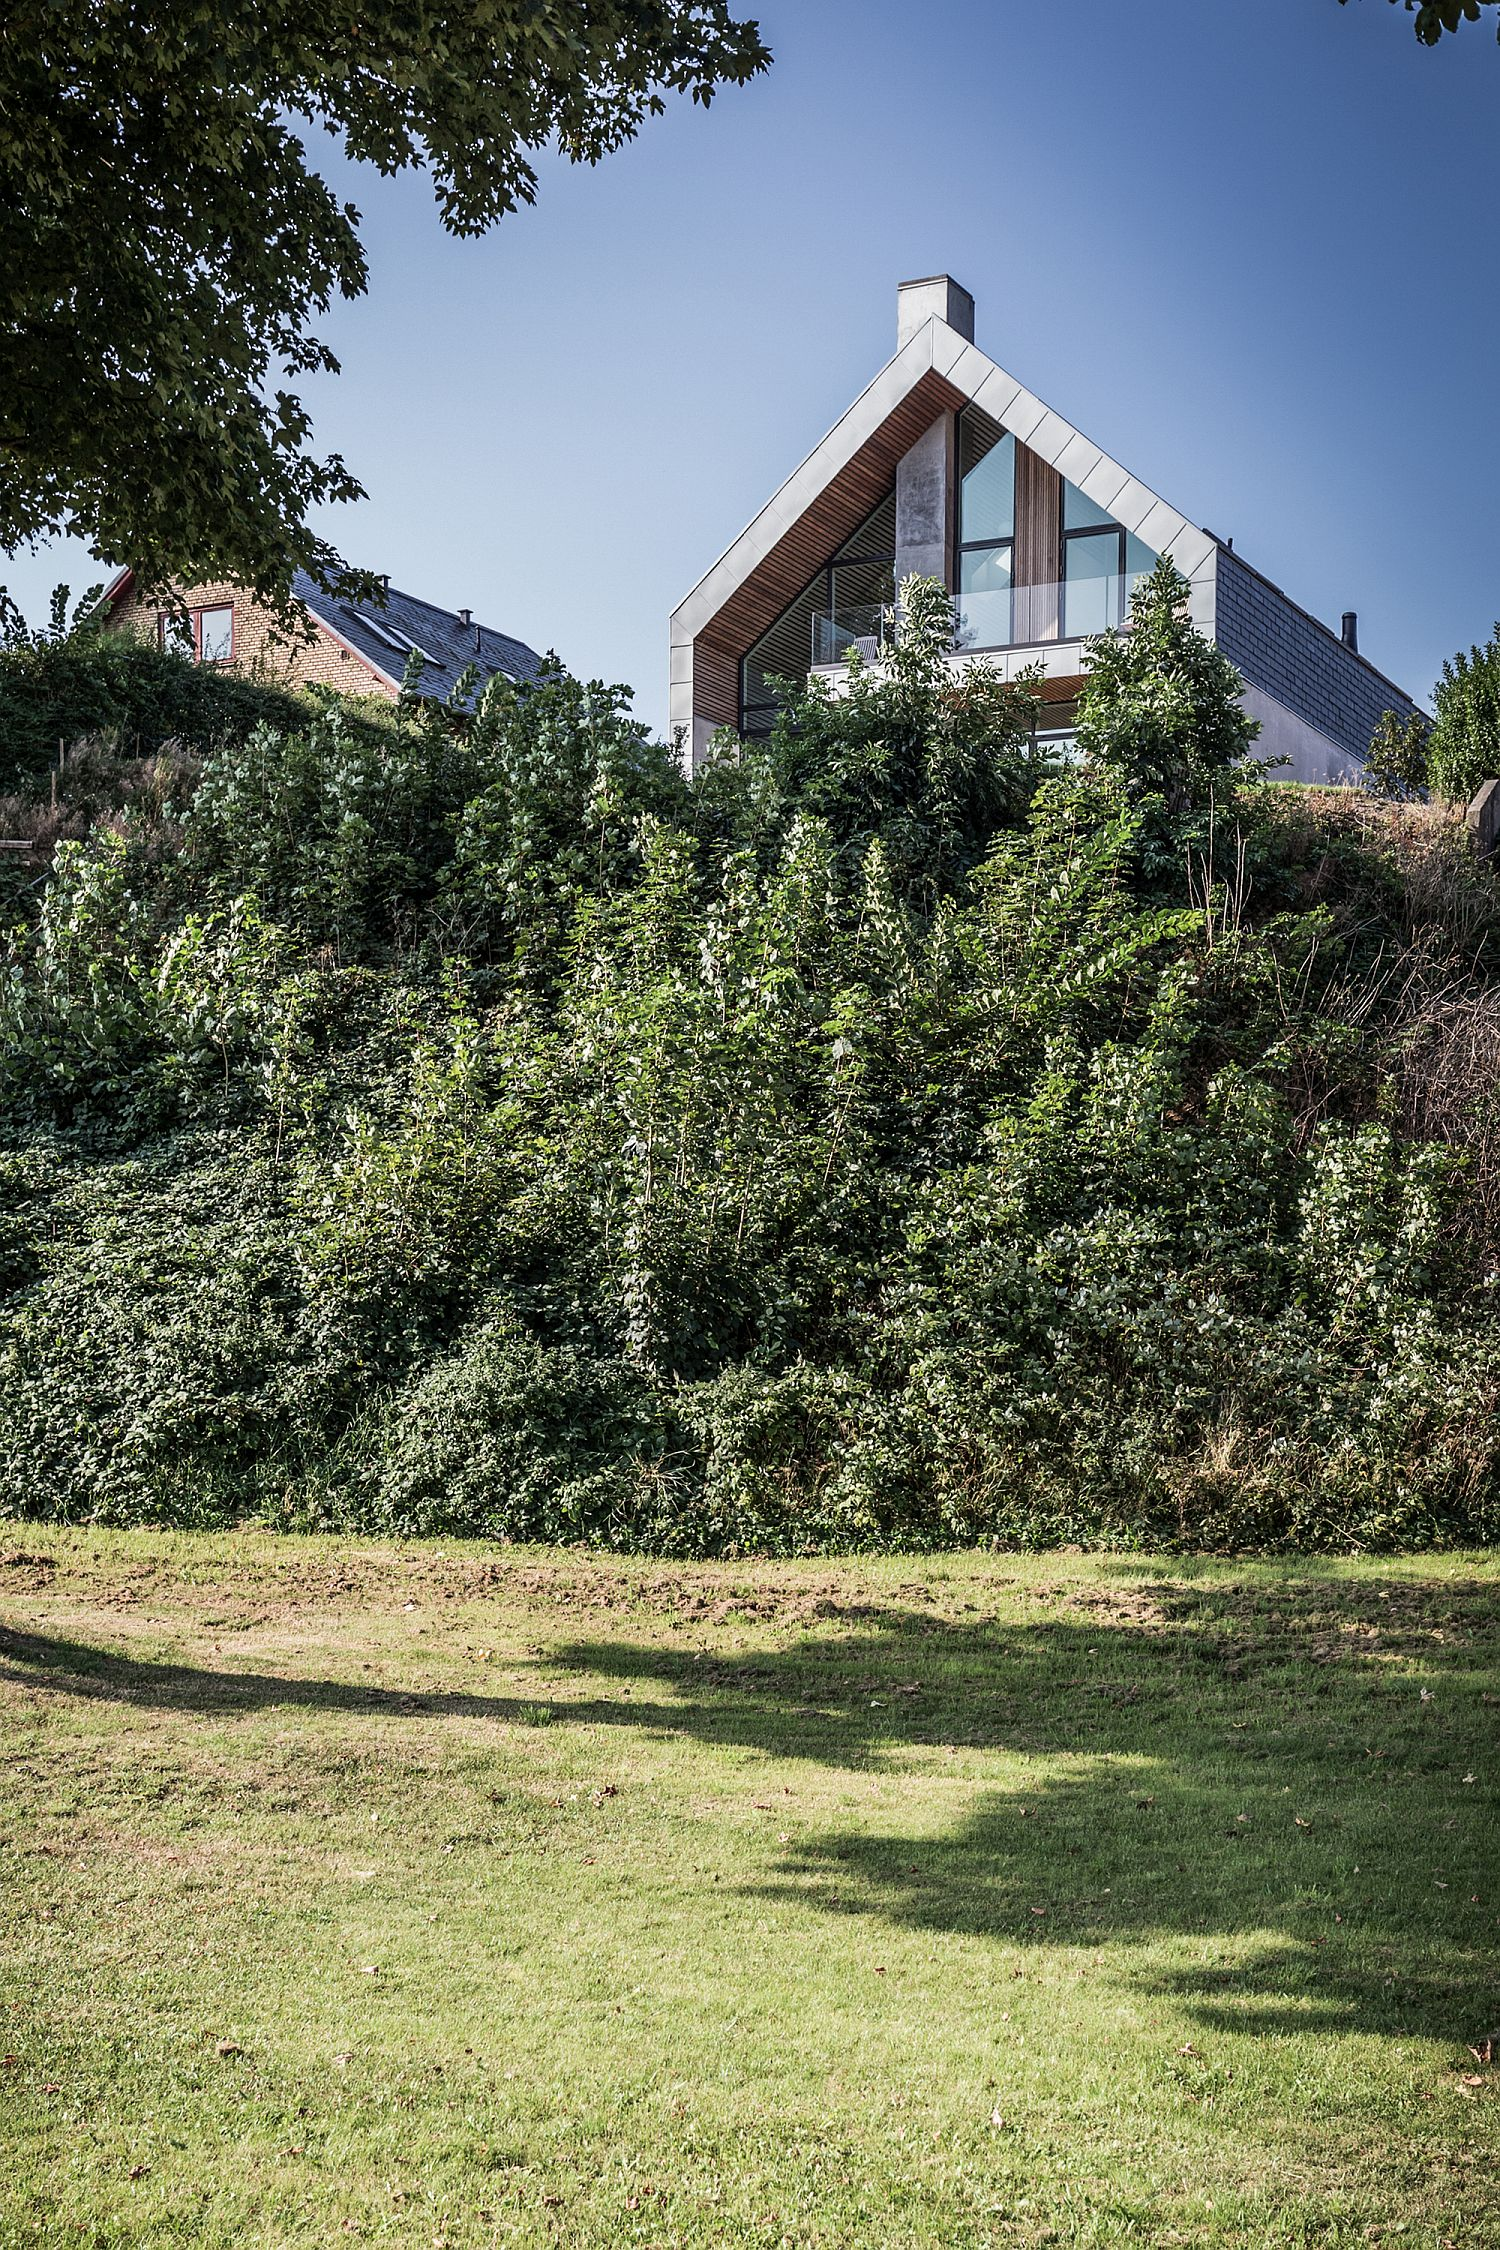 Green vegetation around the Denmark home creates a natural blanket offering privacy